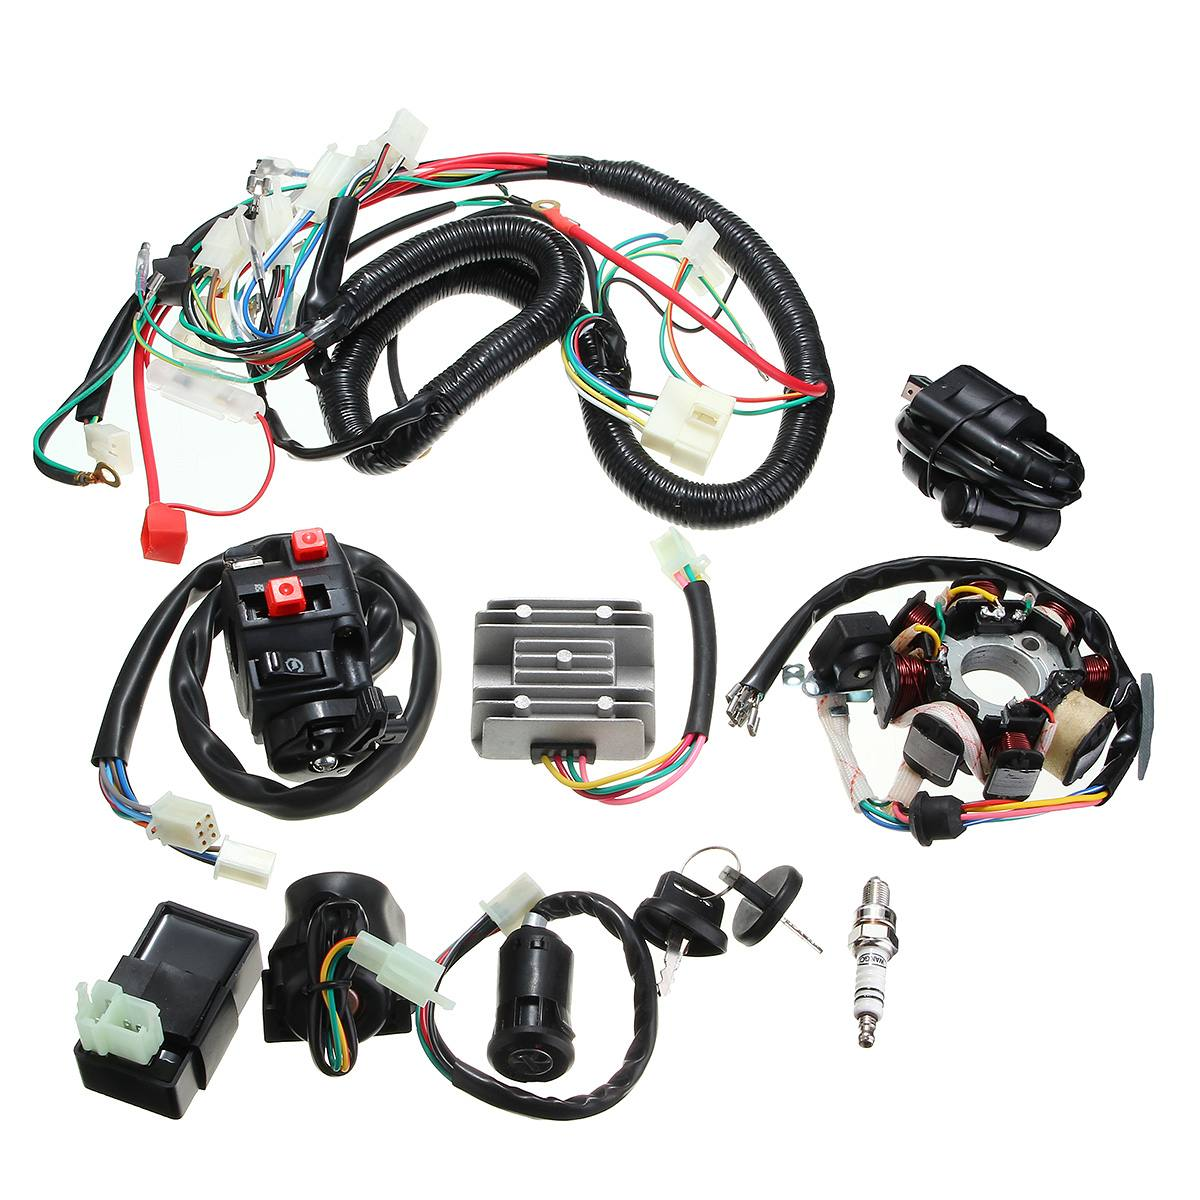 125cc 150cc <font><b>200cc</b></font> 250cc Dirt Bike ATV QUAD ELECTRICS Zongshen <font><b>Lifan</b></font> Ducar Razor CDI Wire Harness Stator Assembly Wiring image